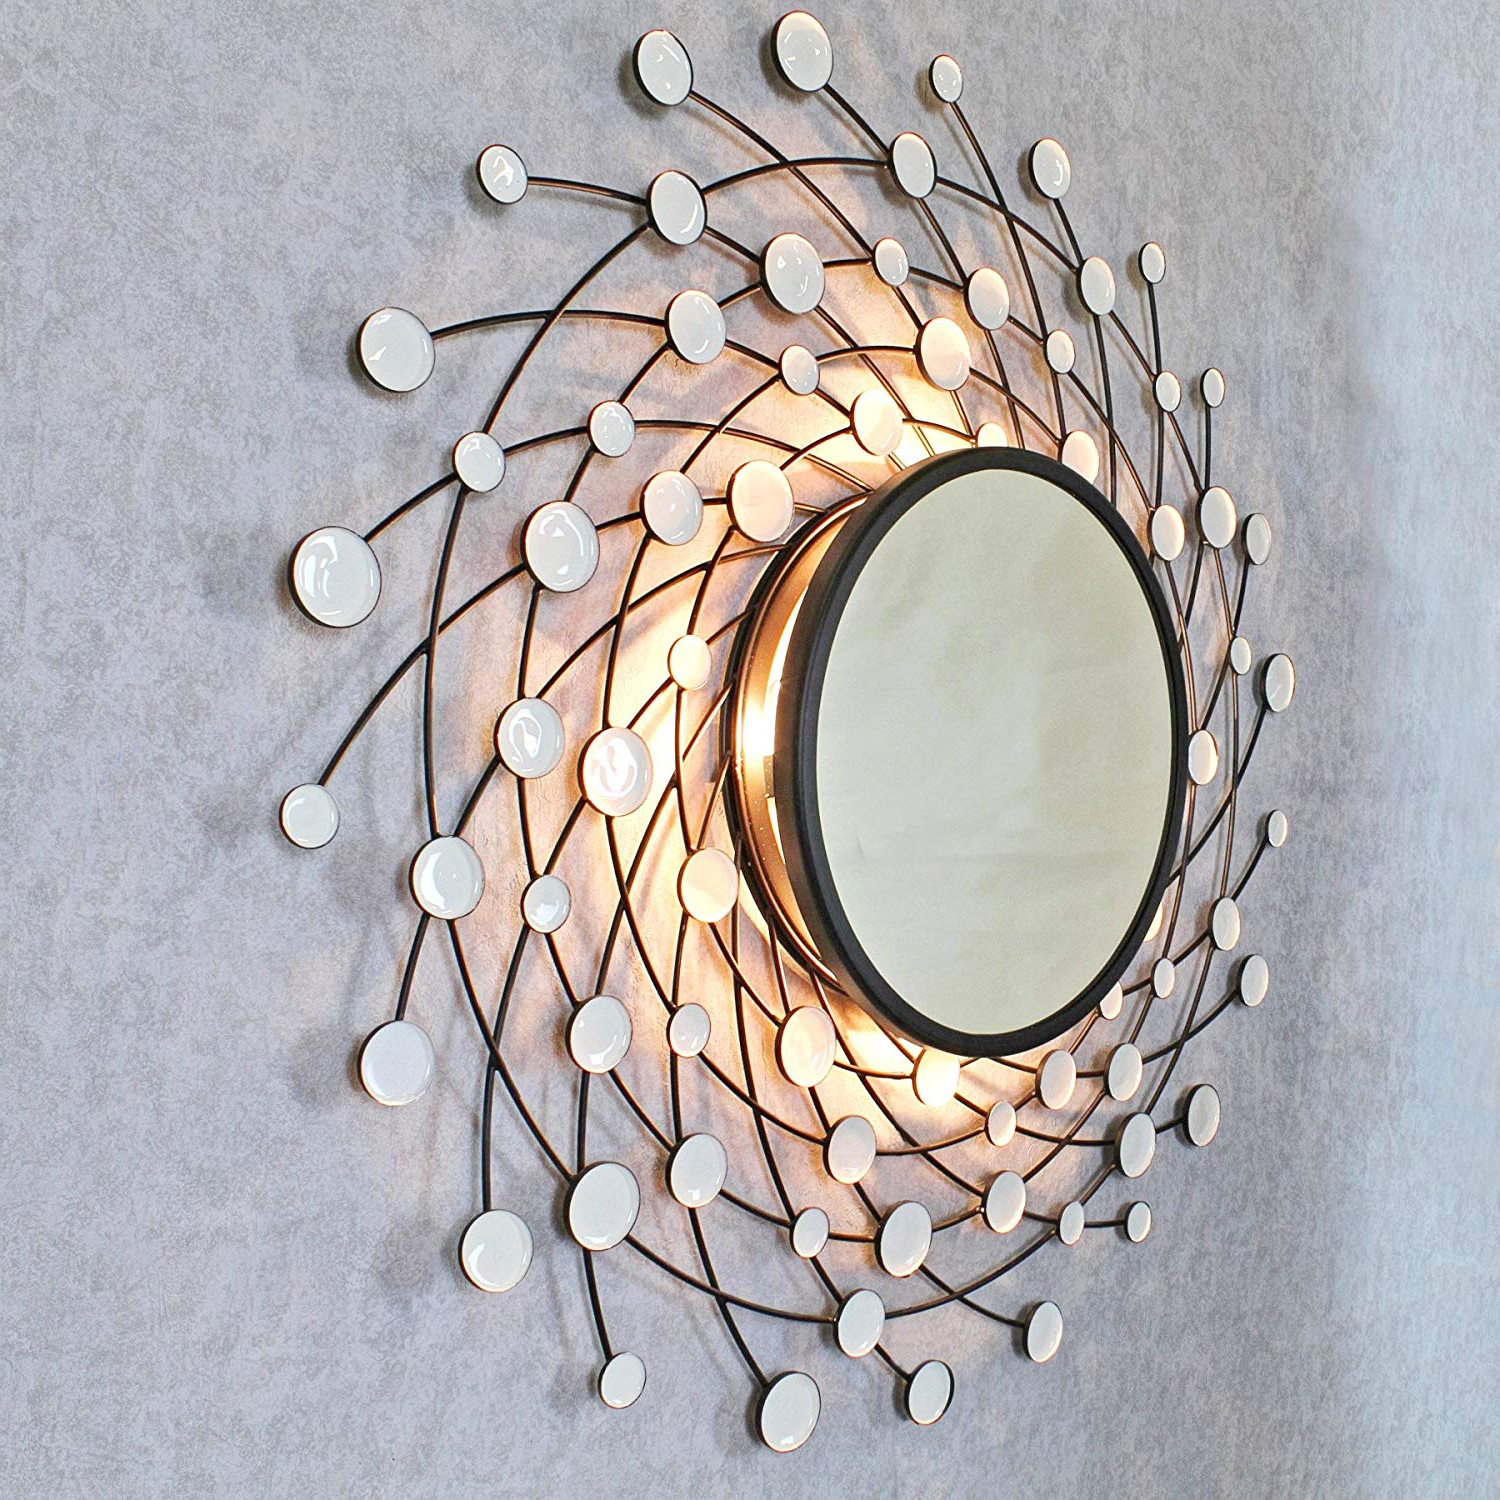 Light Wall Mirrors Inside Latest Elpis Antique Copper Sunburst Rays Light Wall Mirrorg (View 17 of 20)